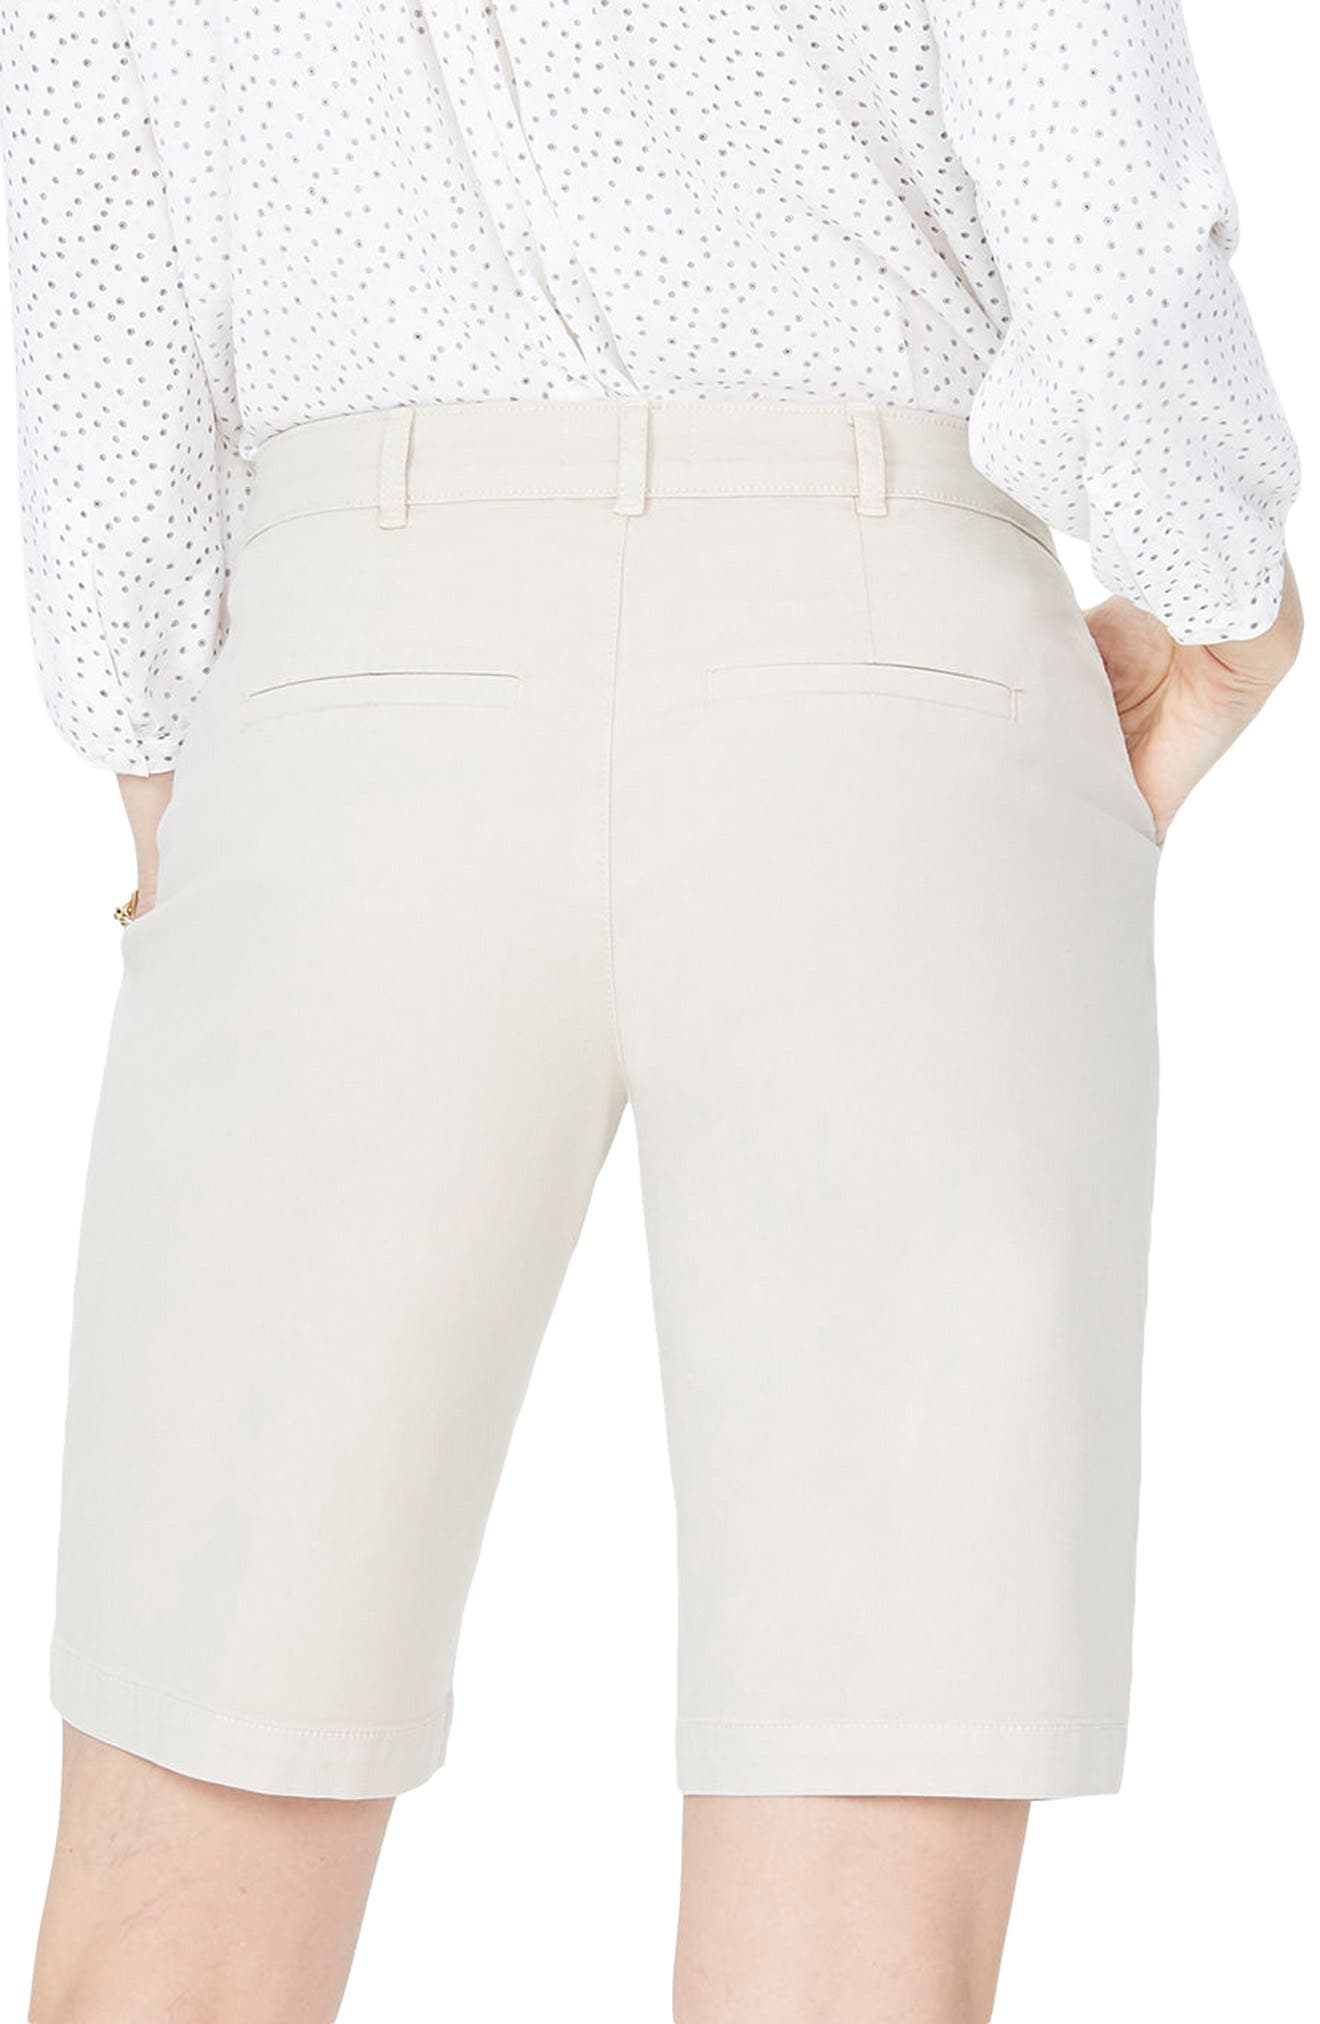 Stretch Twill Bermuda Shorts,                             Alternate thumbnail 2, color,                             FEATHER